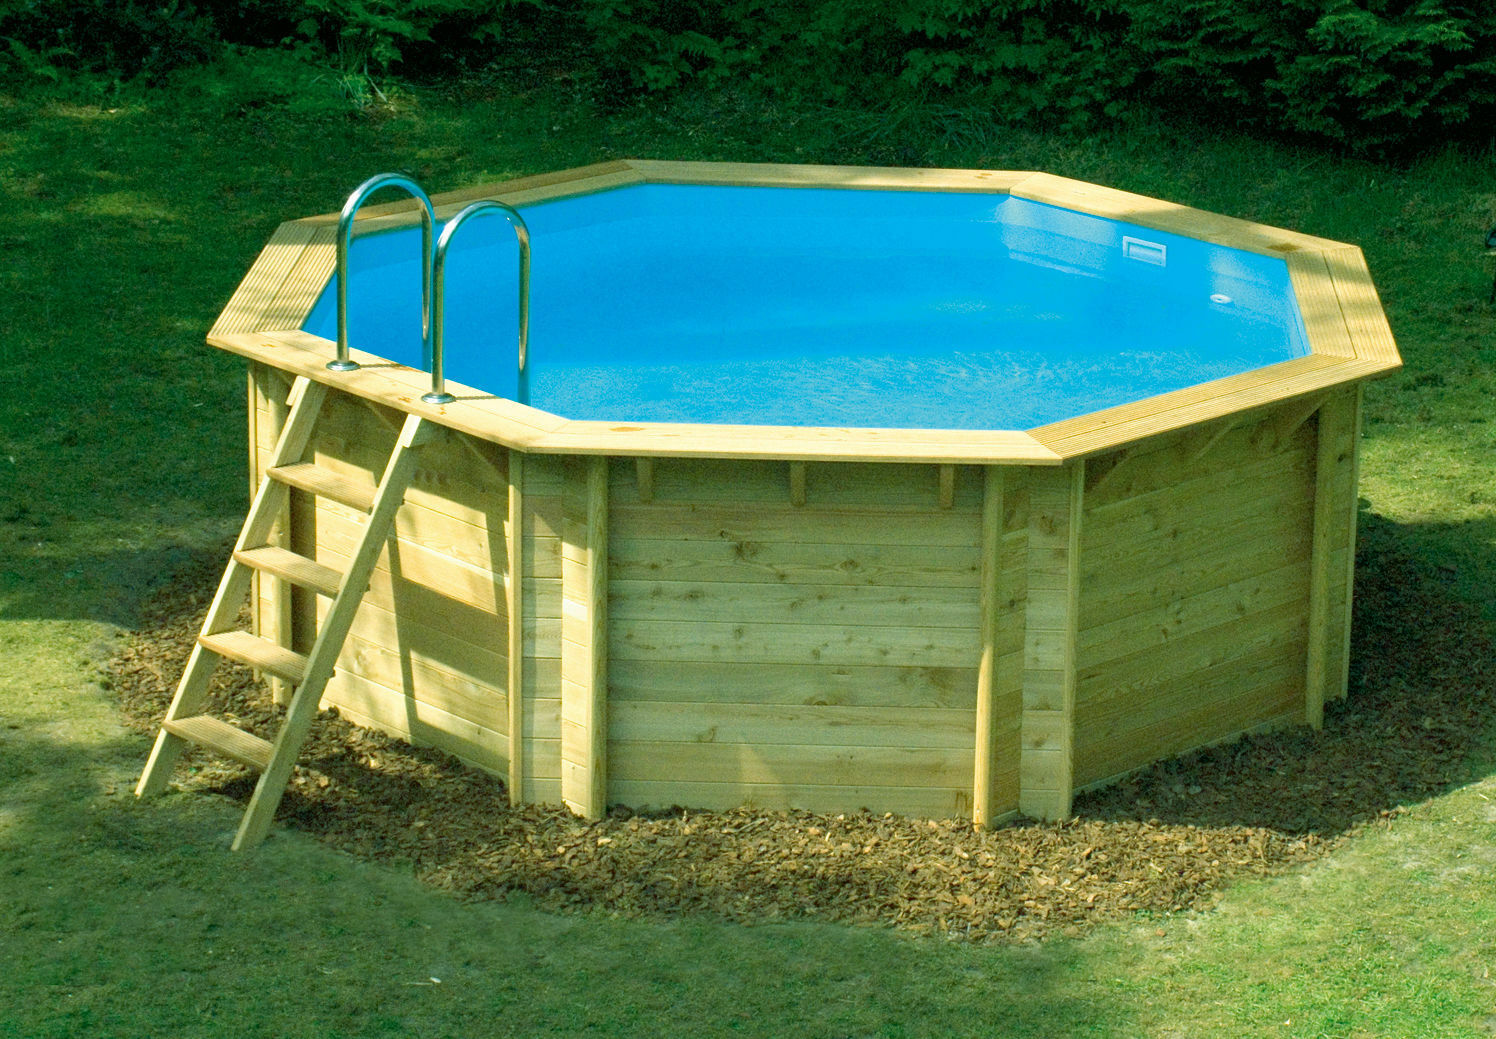 How to make a wooden swimming pool ebay for Wooden pool